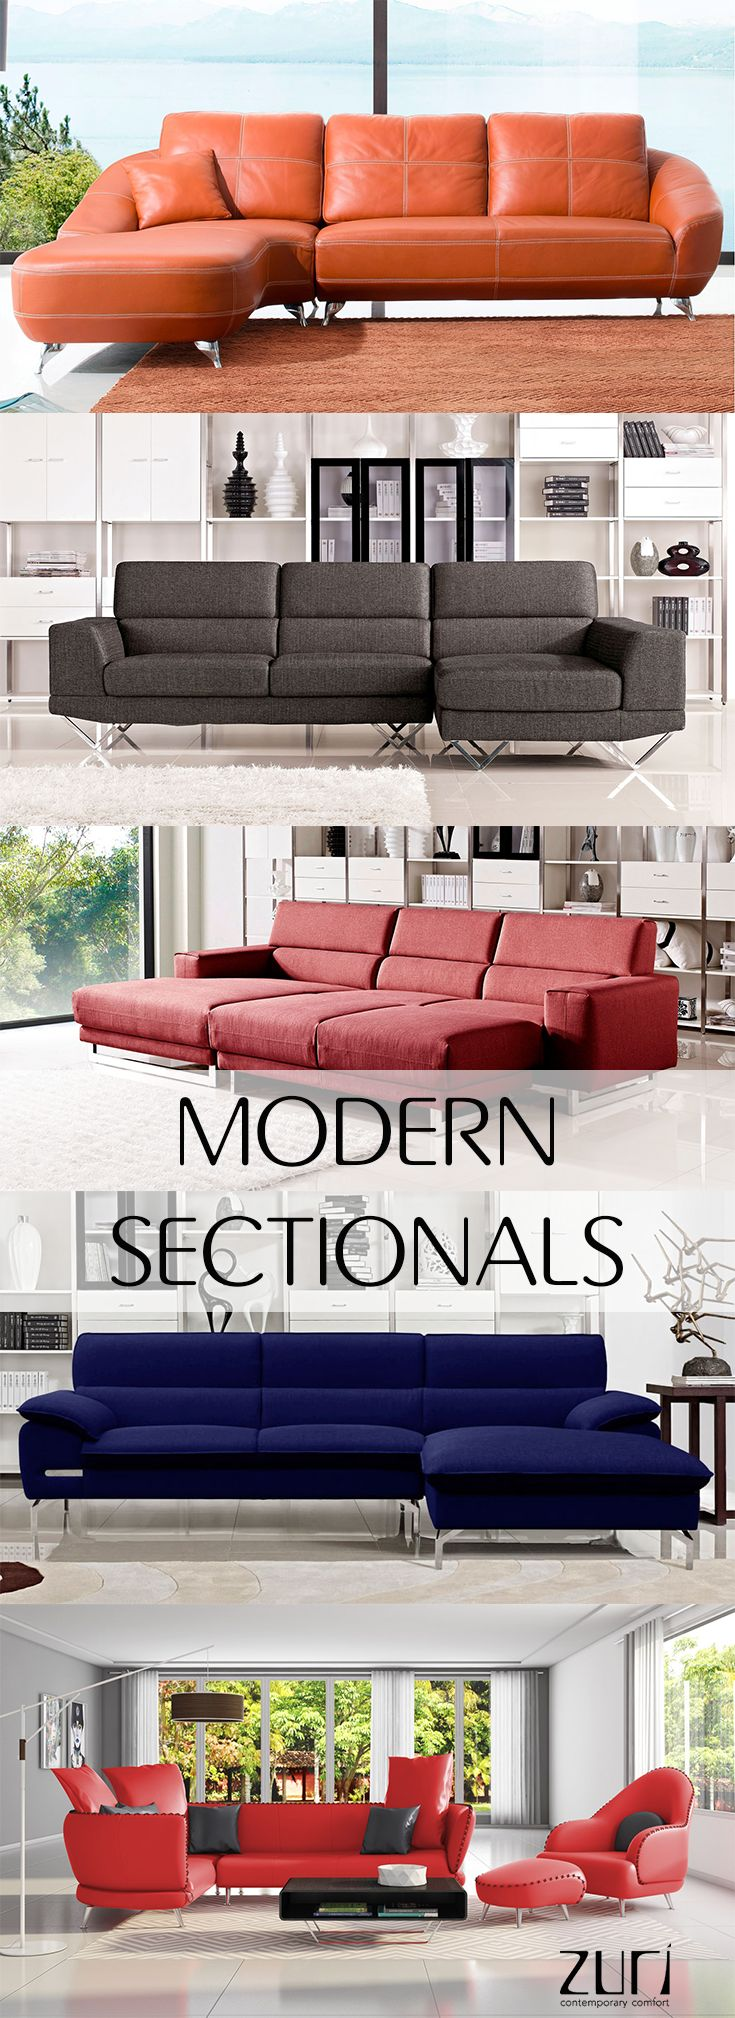 Sofas amp sectionals bedroom dining room chairs amp stools rugs accents - A Sectional Sofa Is The Perfect Statement Piece For Your Modern Living Room Decor Shop